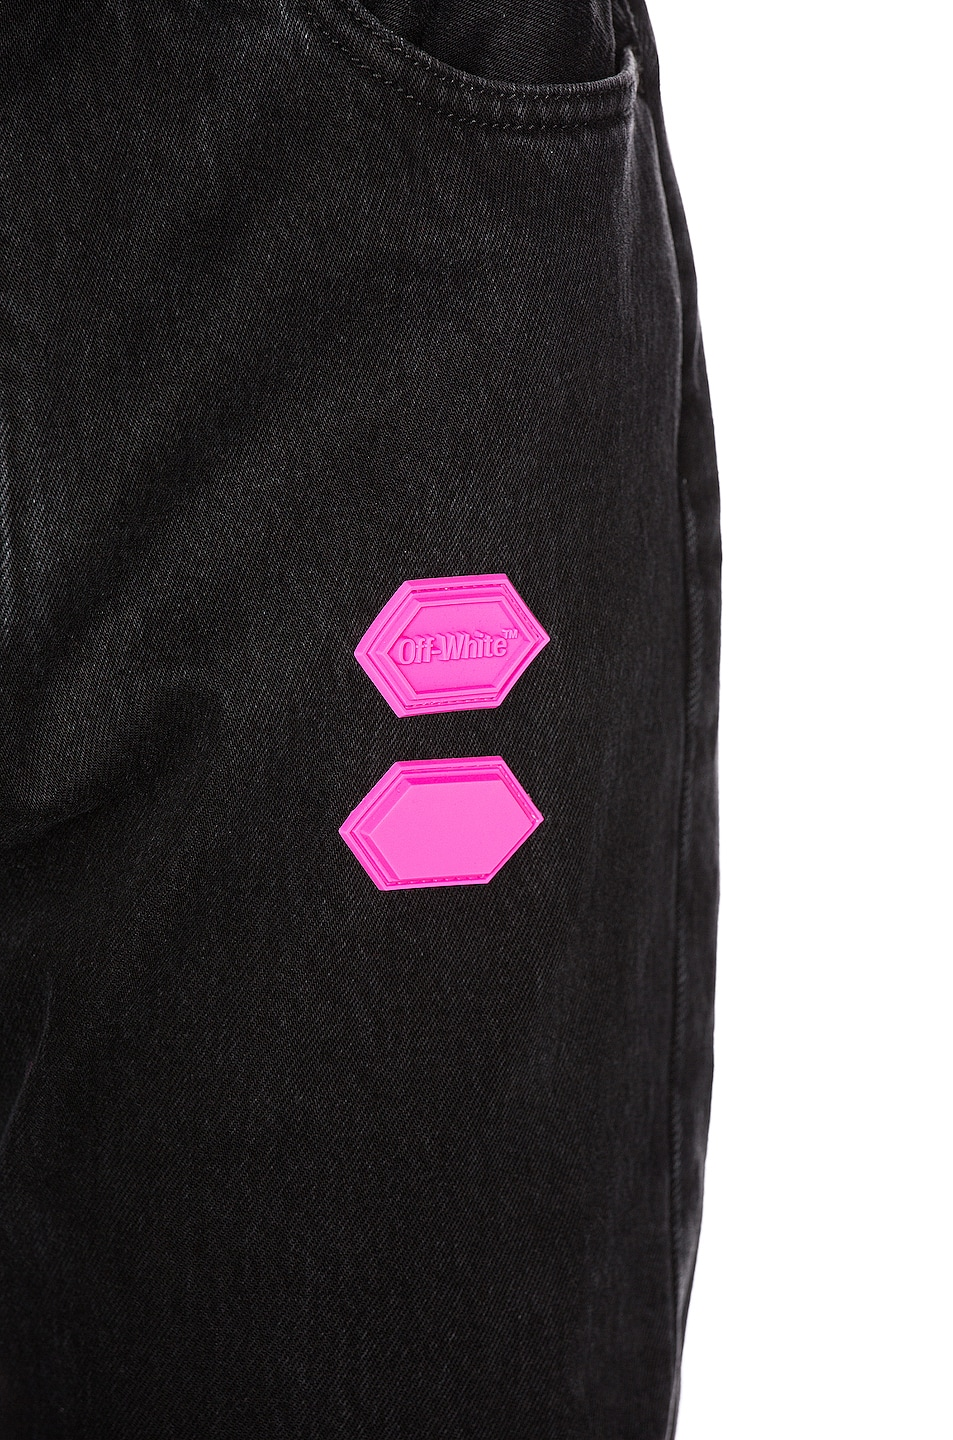 Image 7 of OFF-WHITE EXCLUSIVE Slim Low Crotch Pants in Black